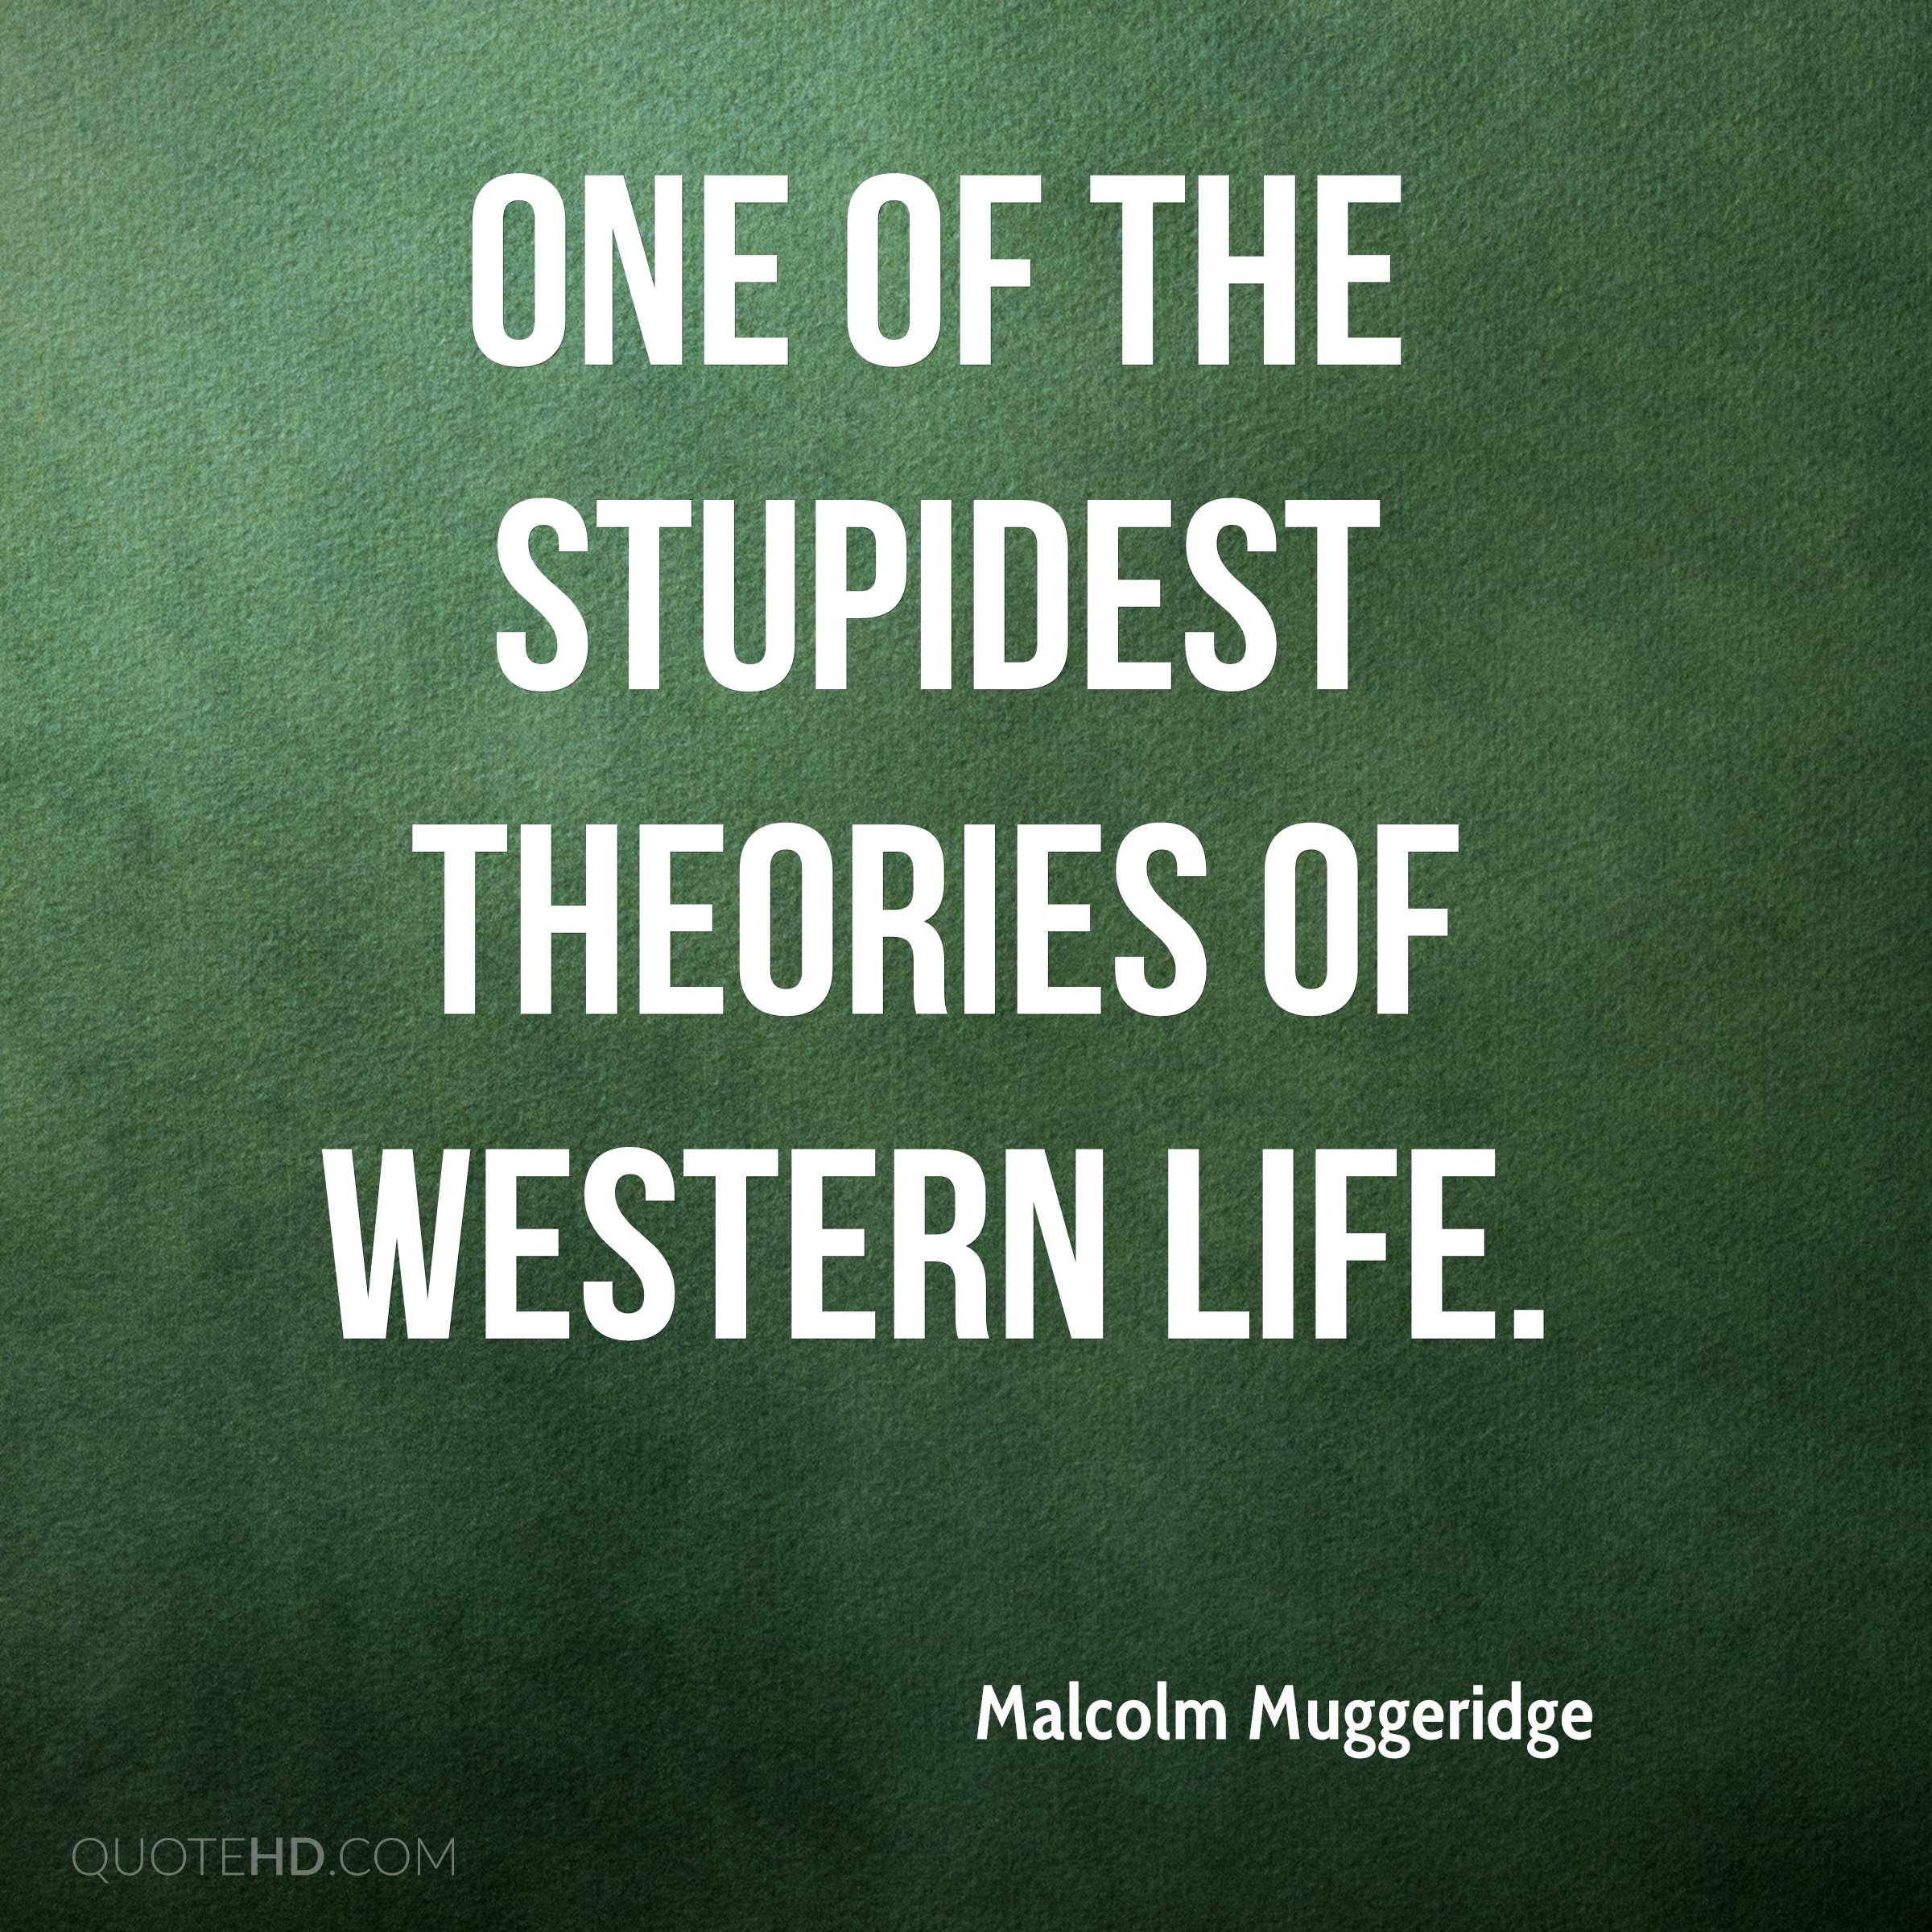 Malcolm Muggeridge Quotes Quotehd